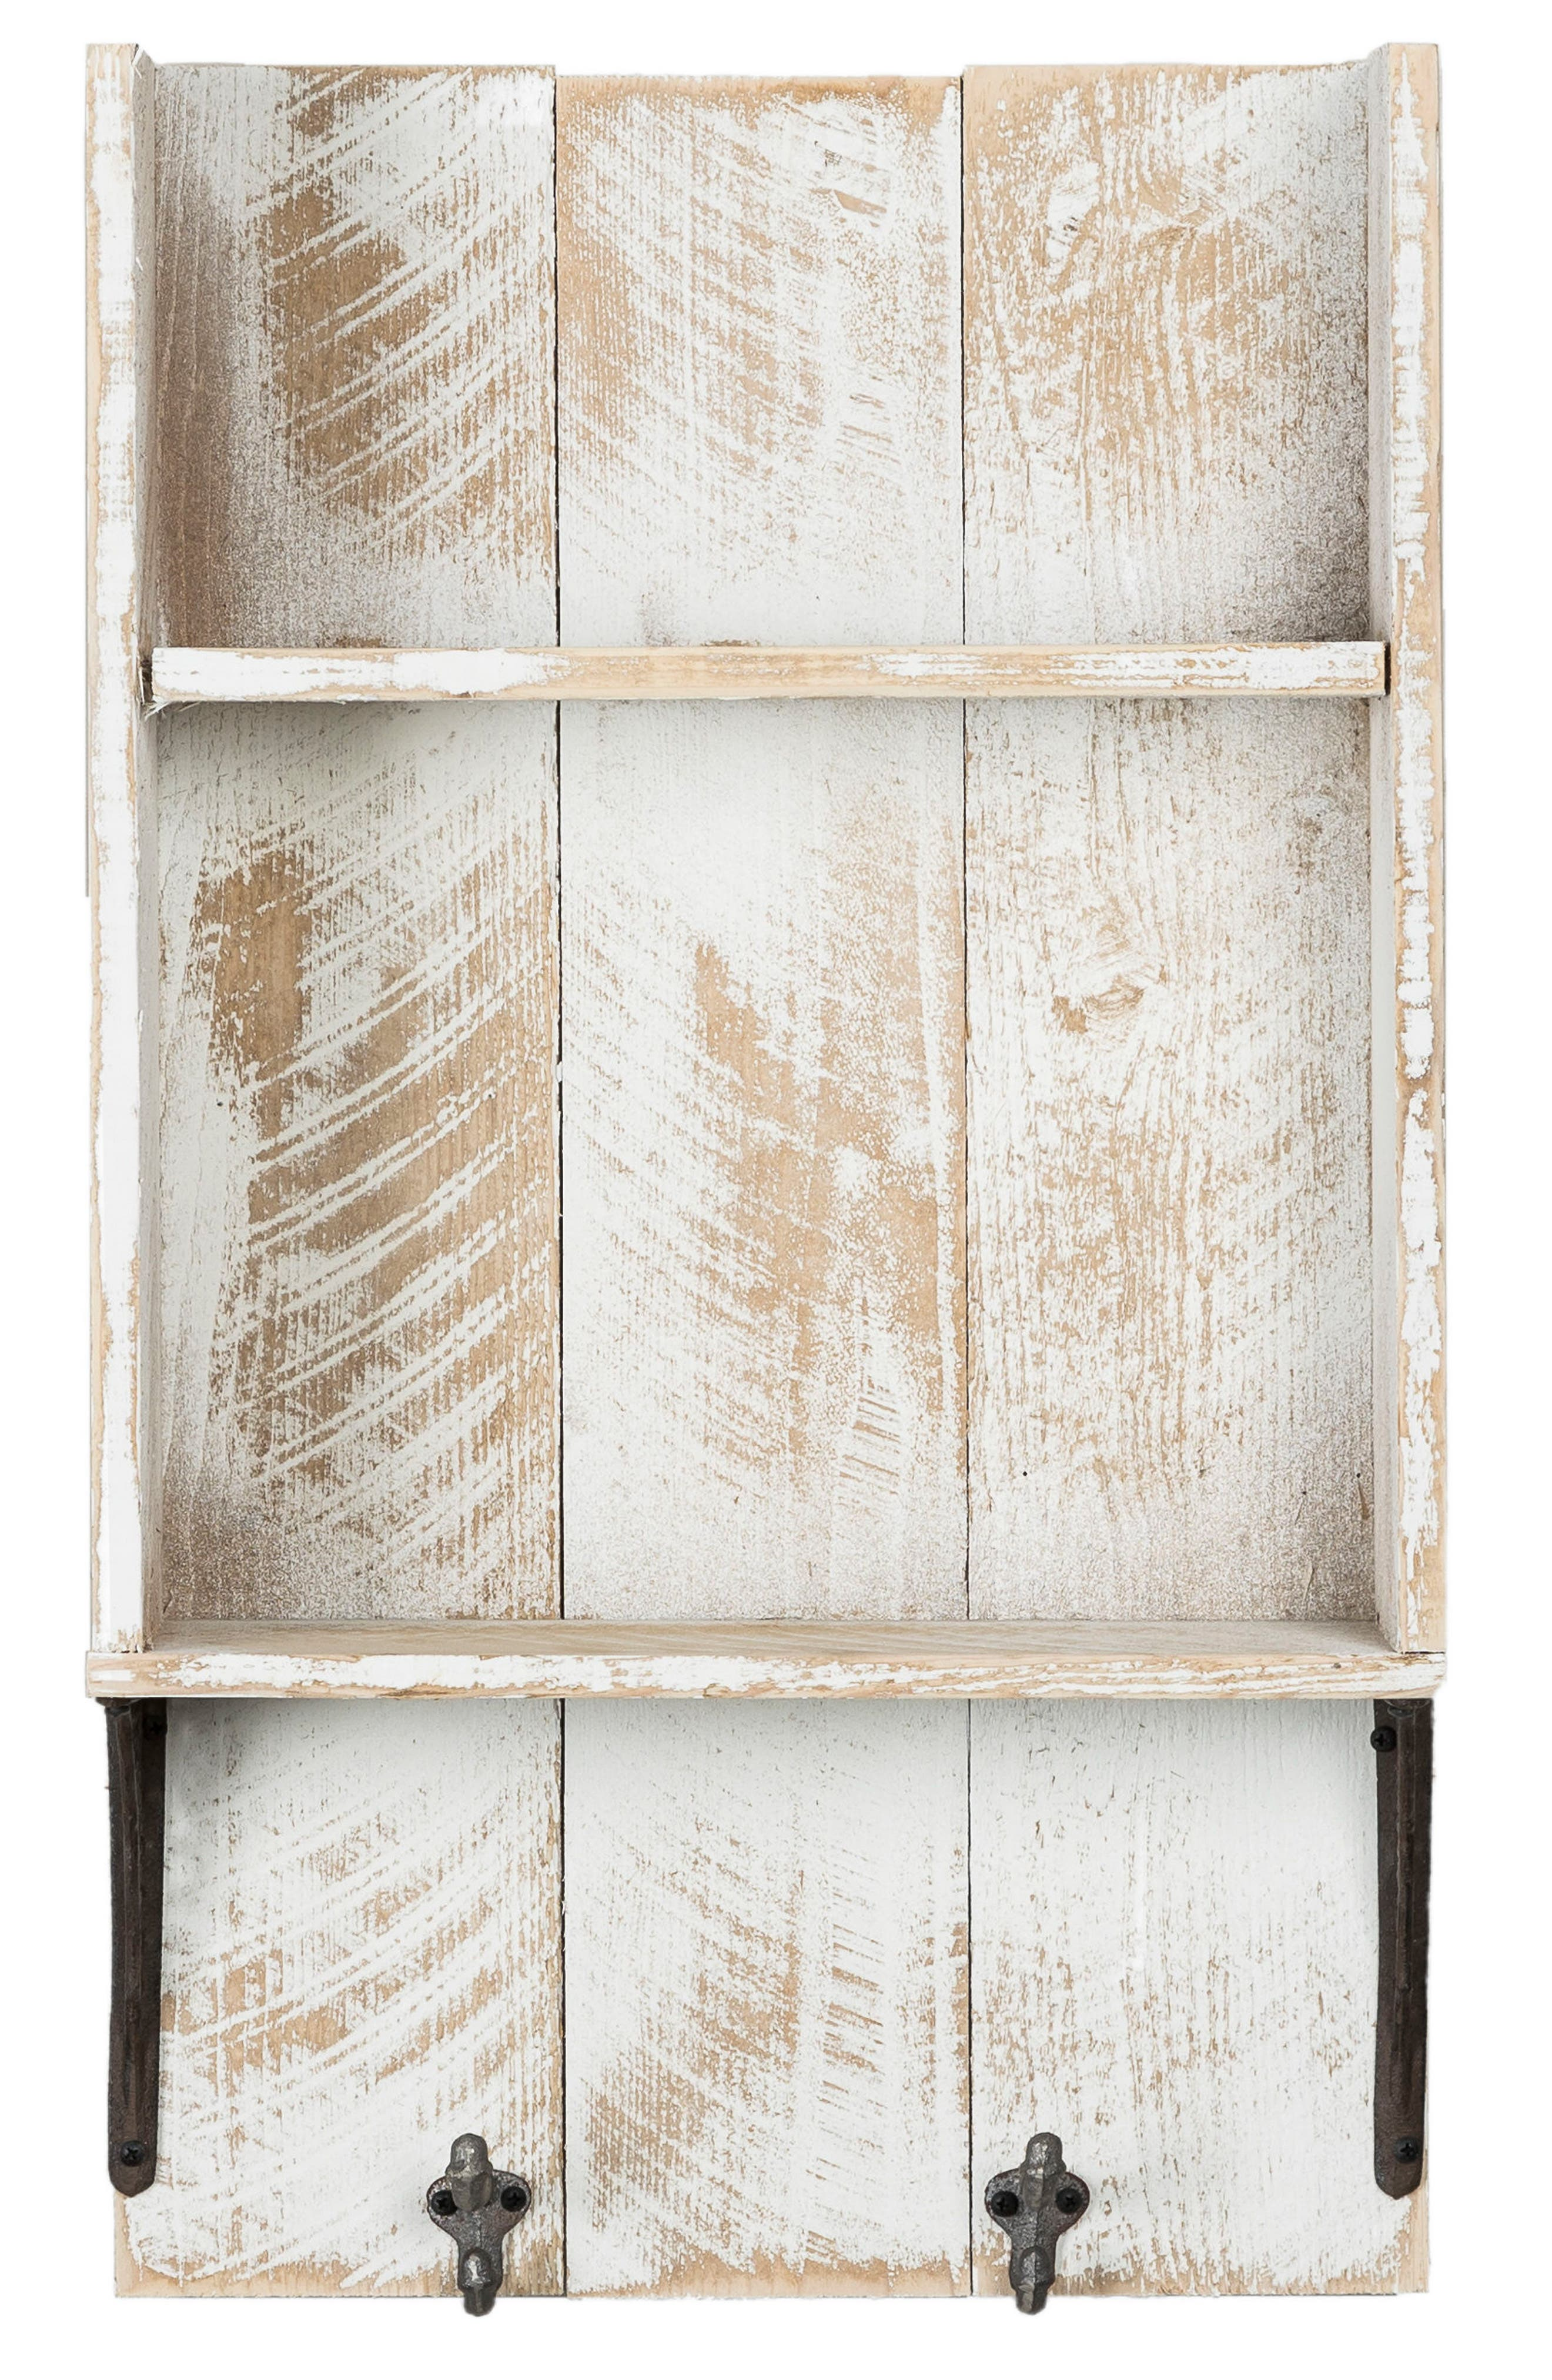 Main Image - (del)Hutson Designs Reclaimed Wood Shelf with Hooks